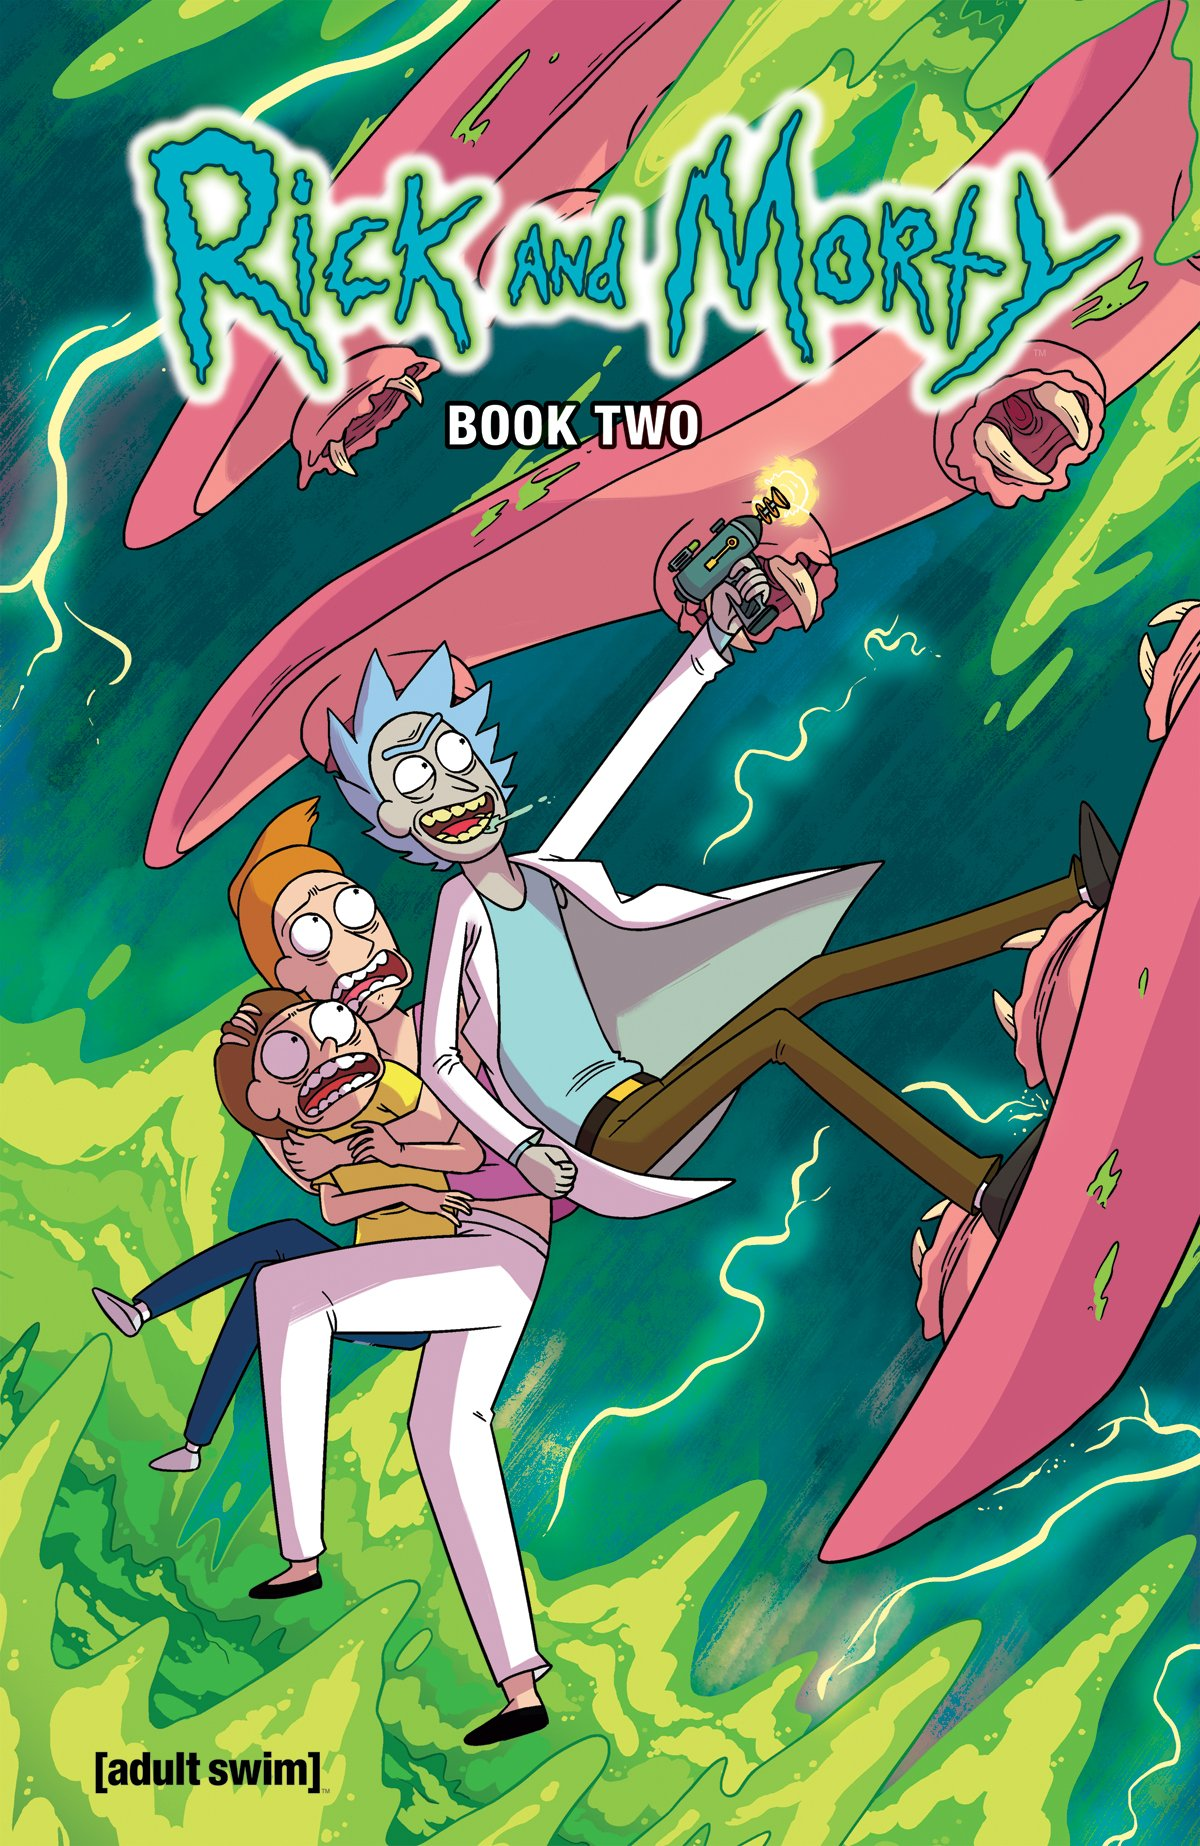 Wubba Lubba Dub Dub! #RickandMorty HC Book 2 is at our booth, broh! #NYCC2017 #NYCC https://t.co/4qRl4SUw5d